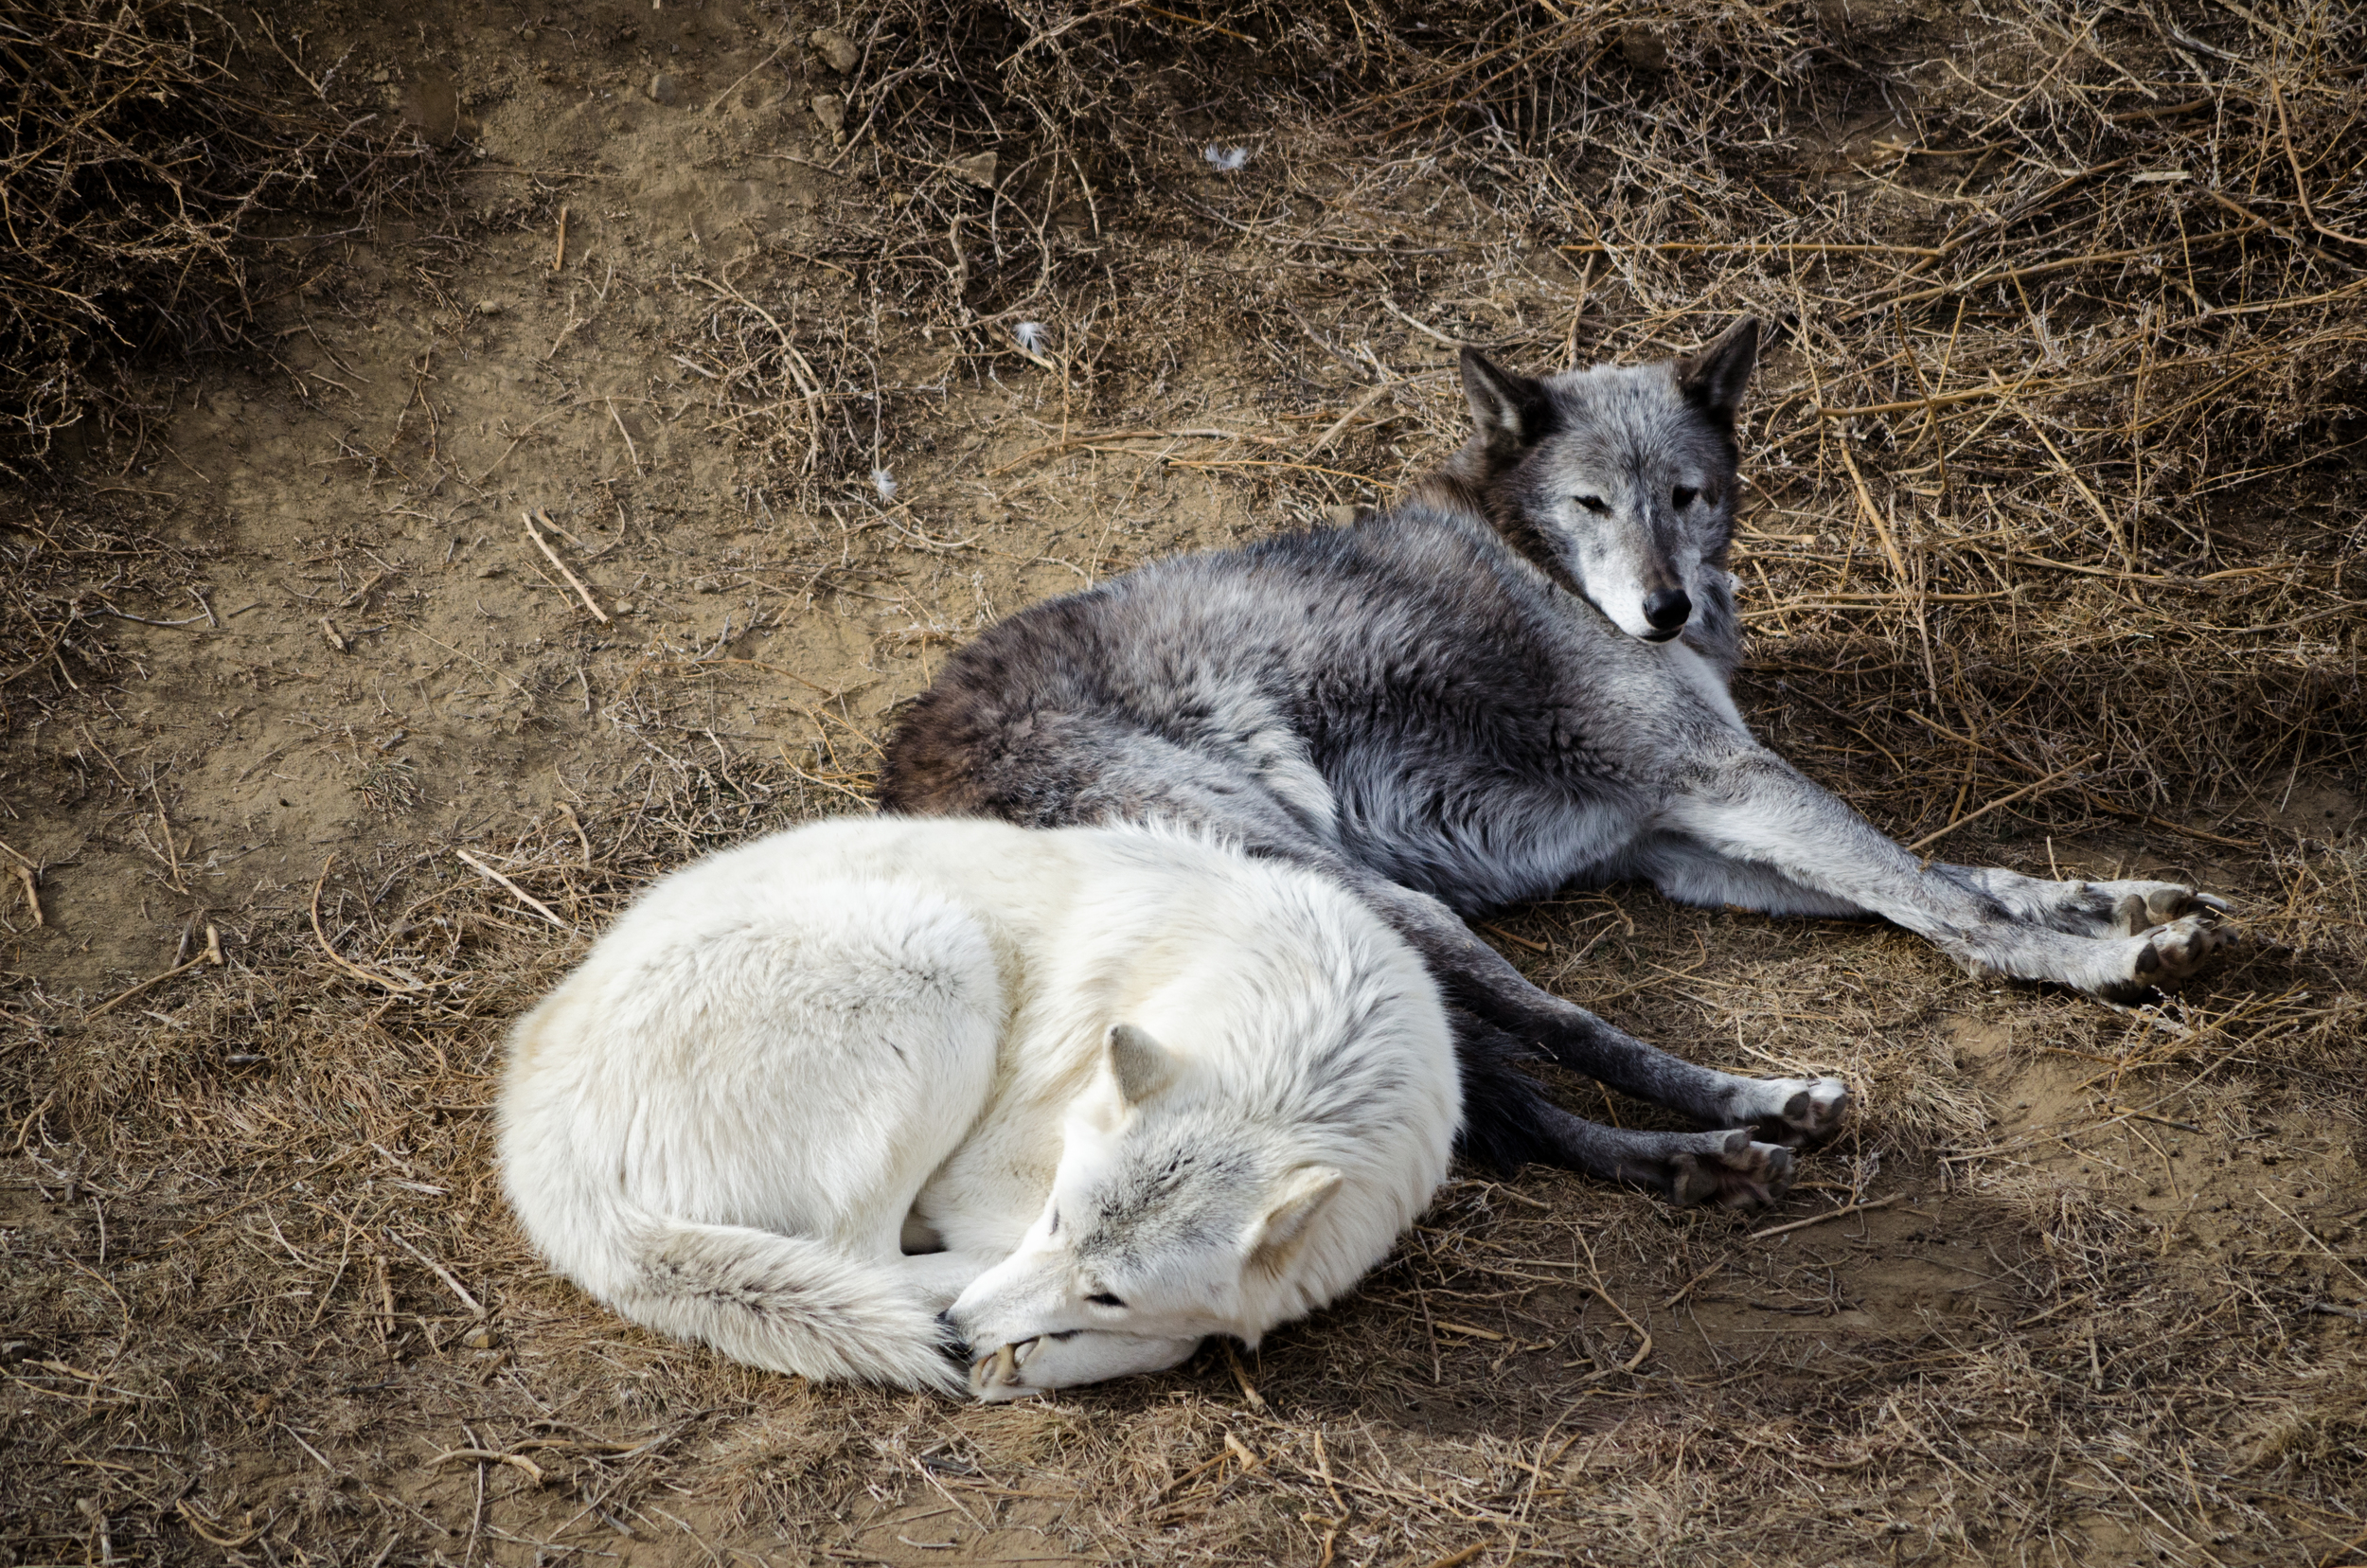 Wolves at the Colorado Wild Animal Sanctuary 2015